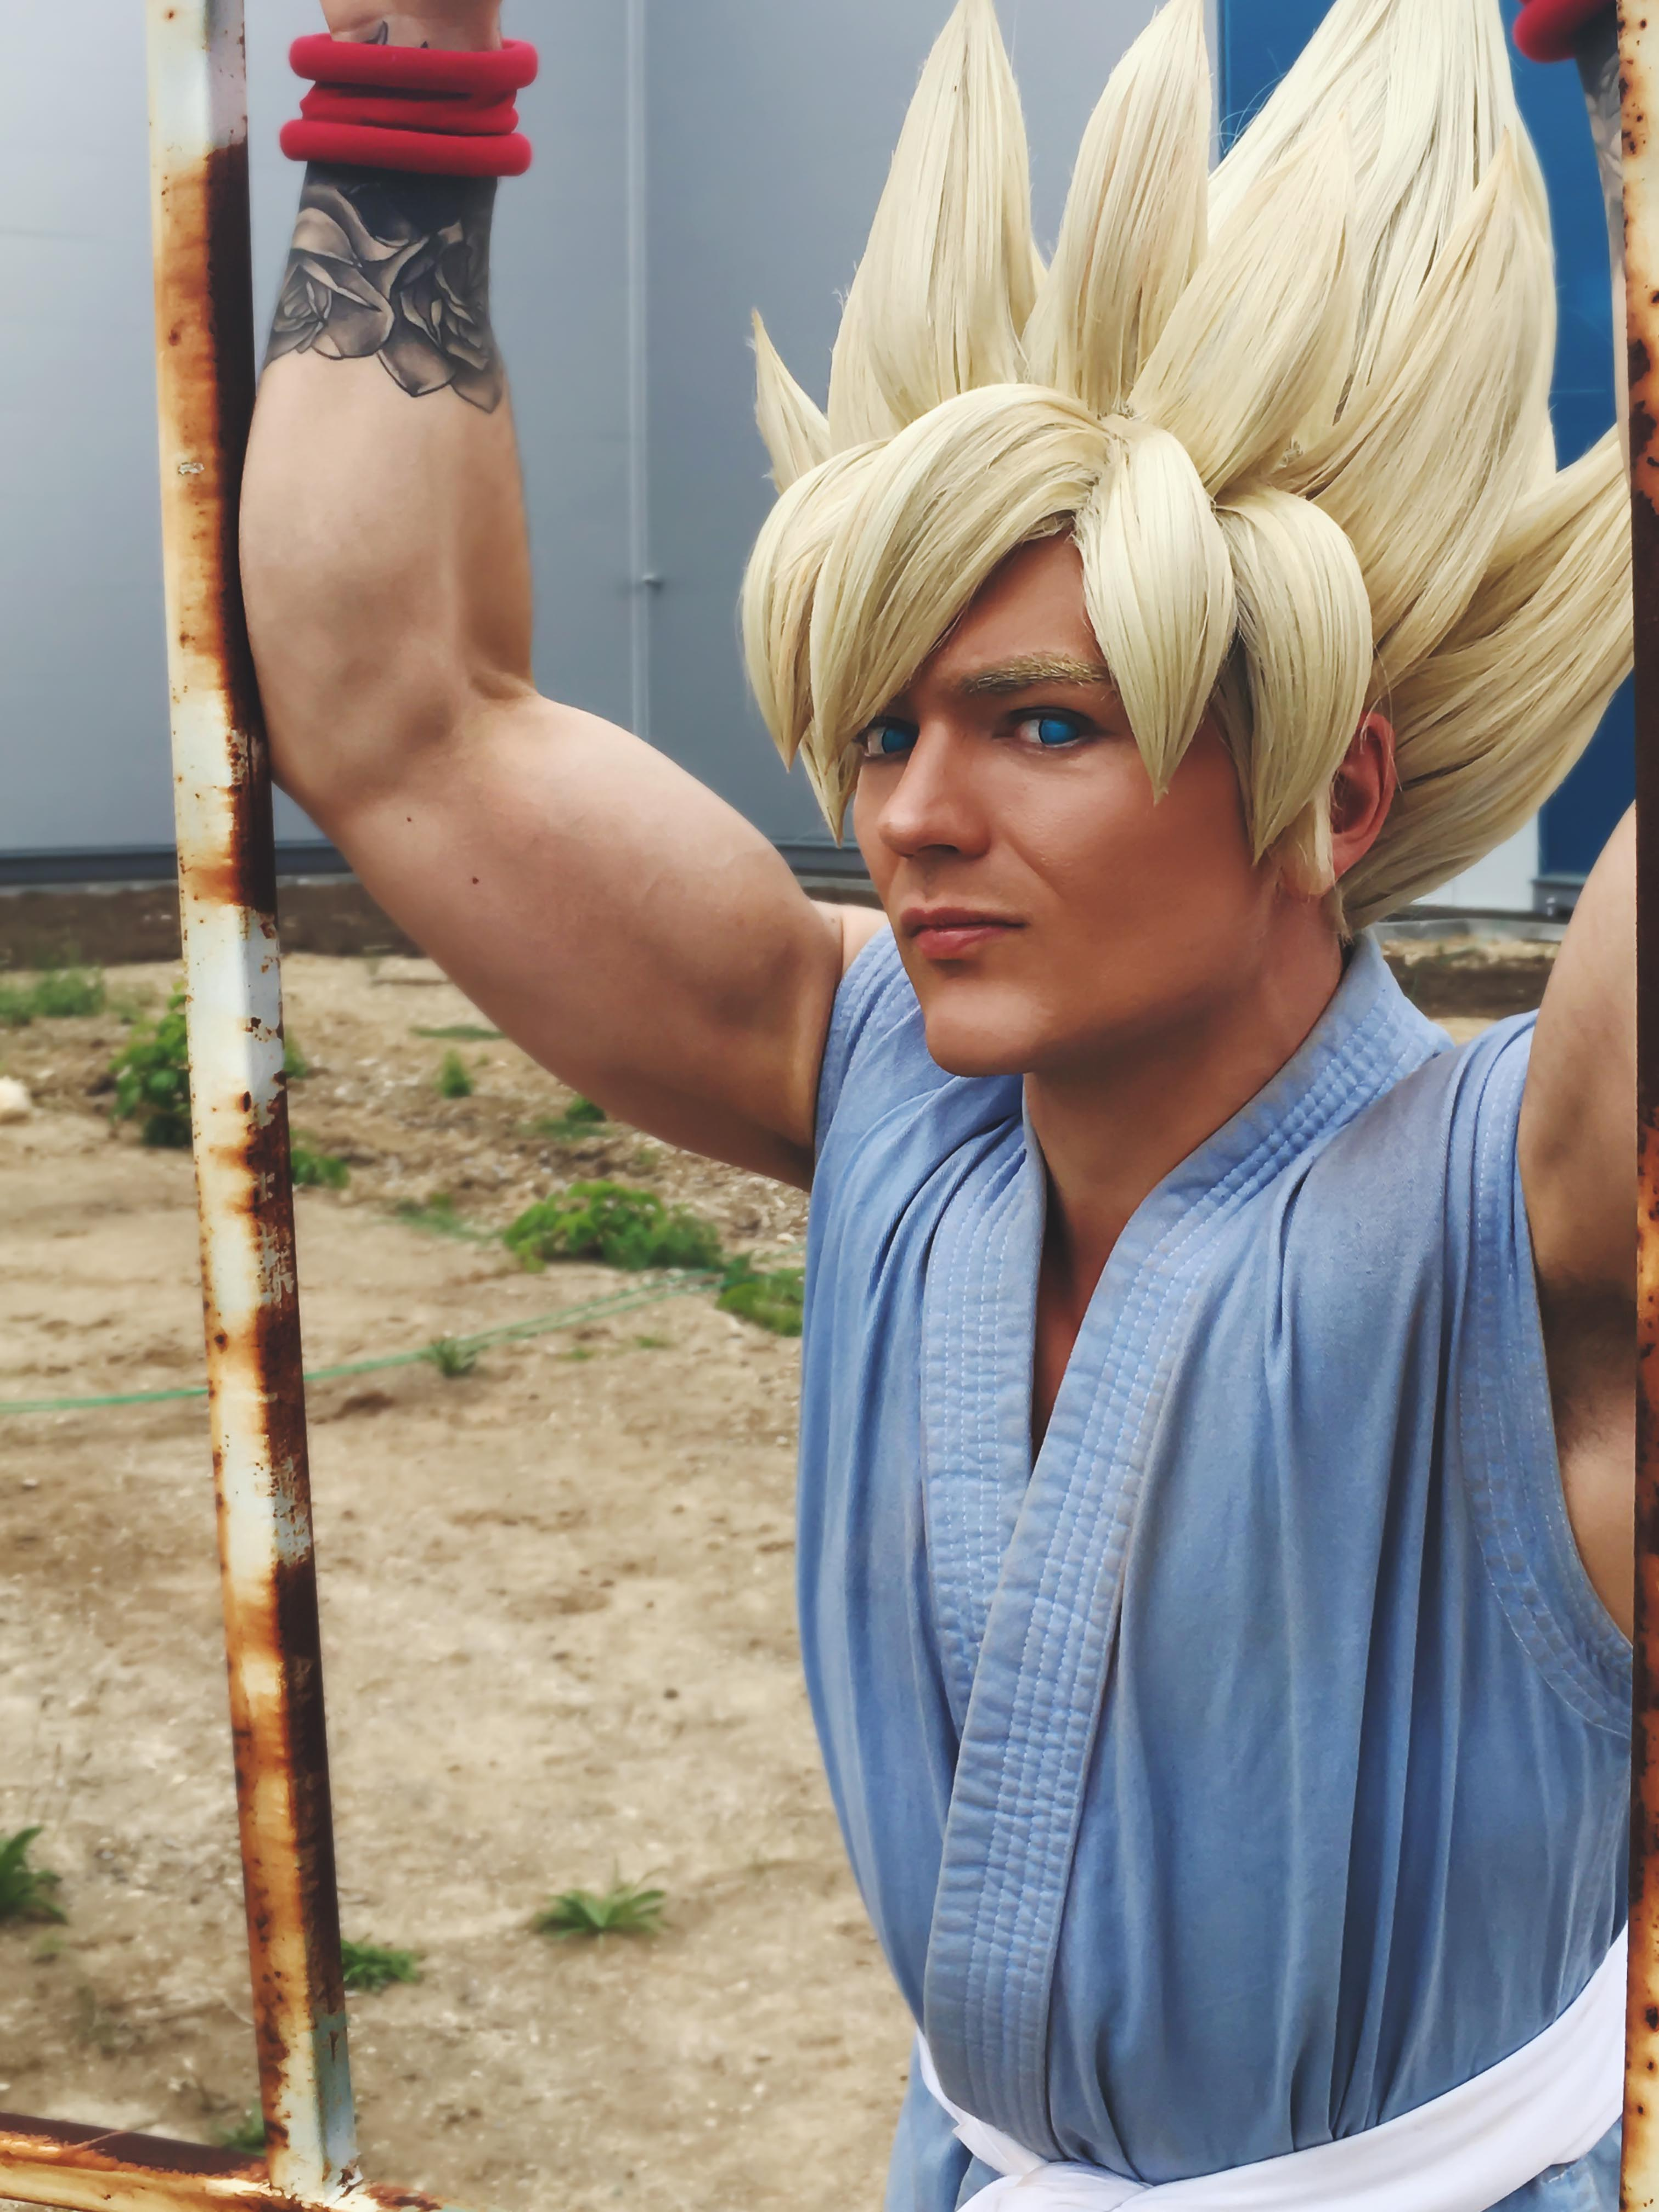 Hench Goku cosplayer from DragonBall GT flexing his arms